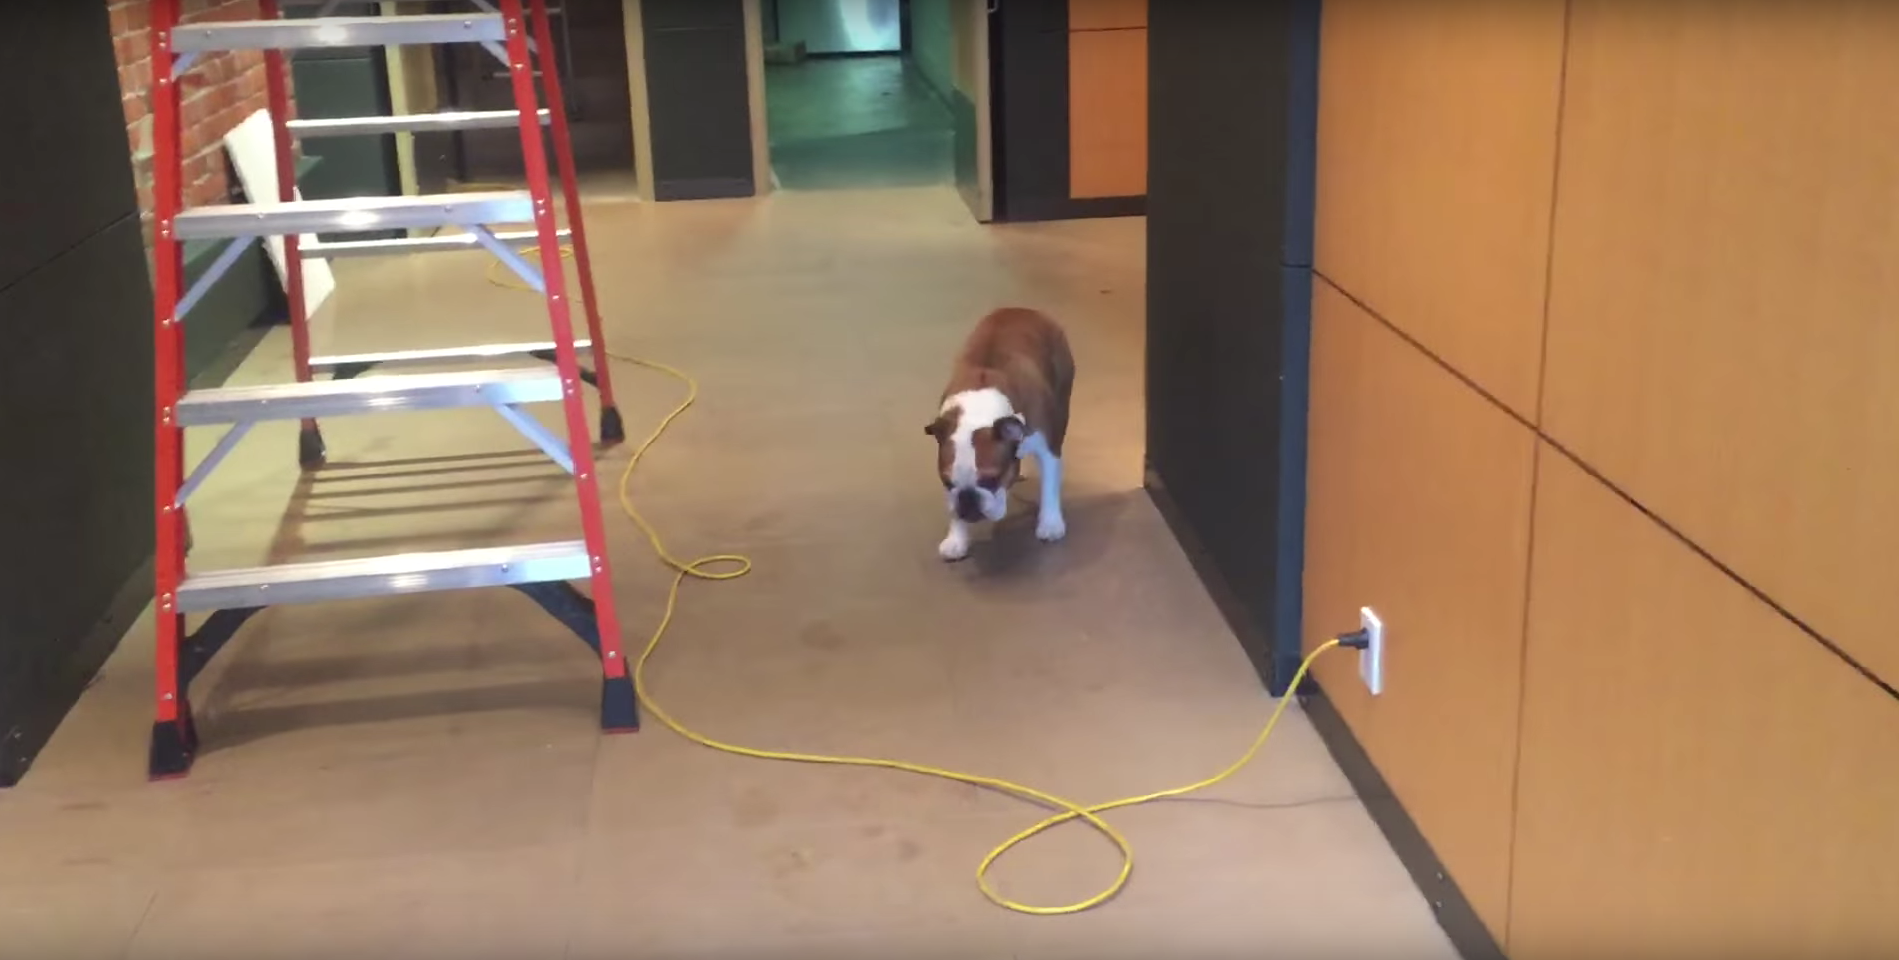 A Dog Who Feared Lot Of Things Learned How To Deal With Them In Strange Way